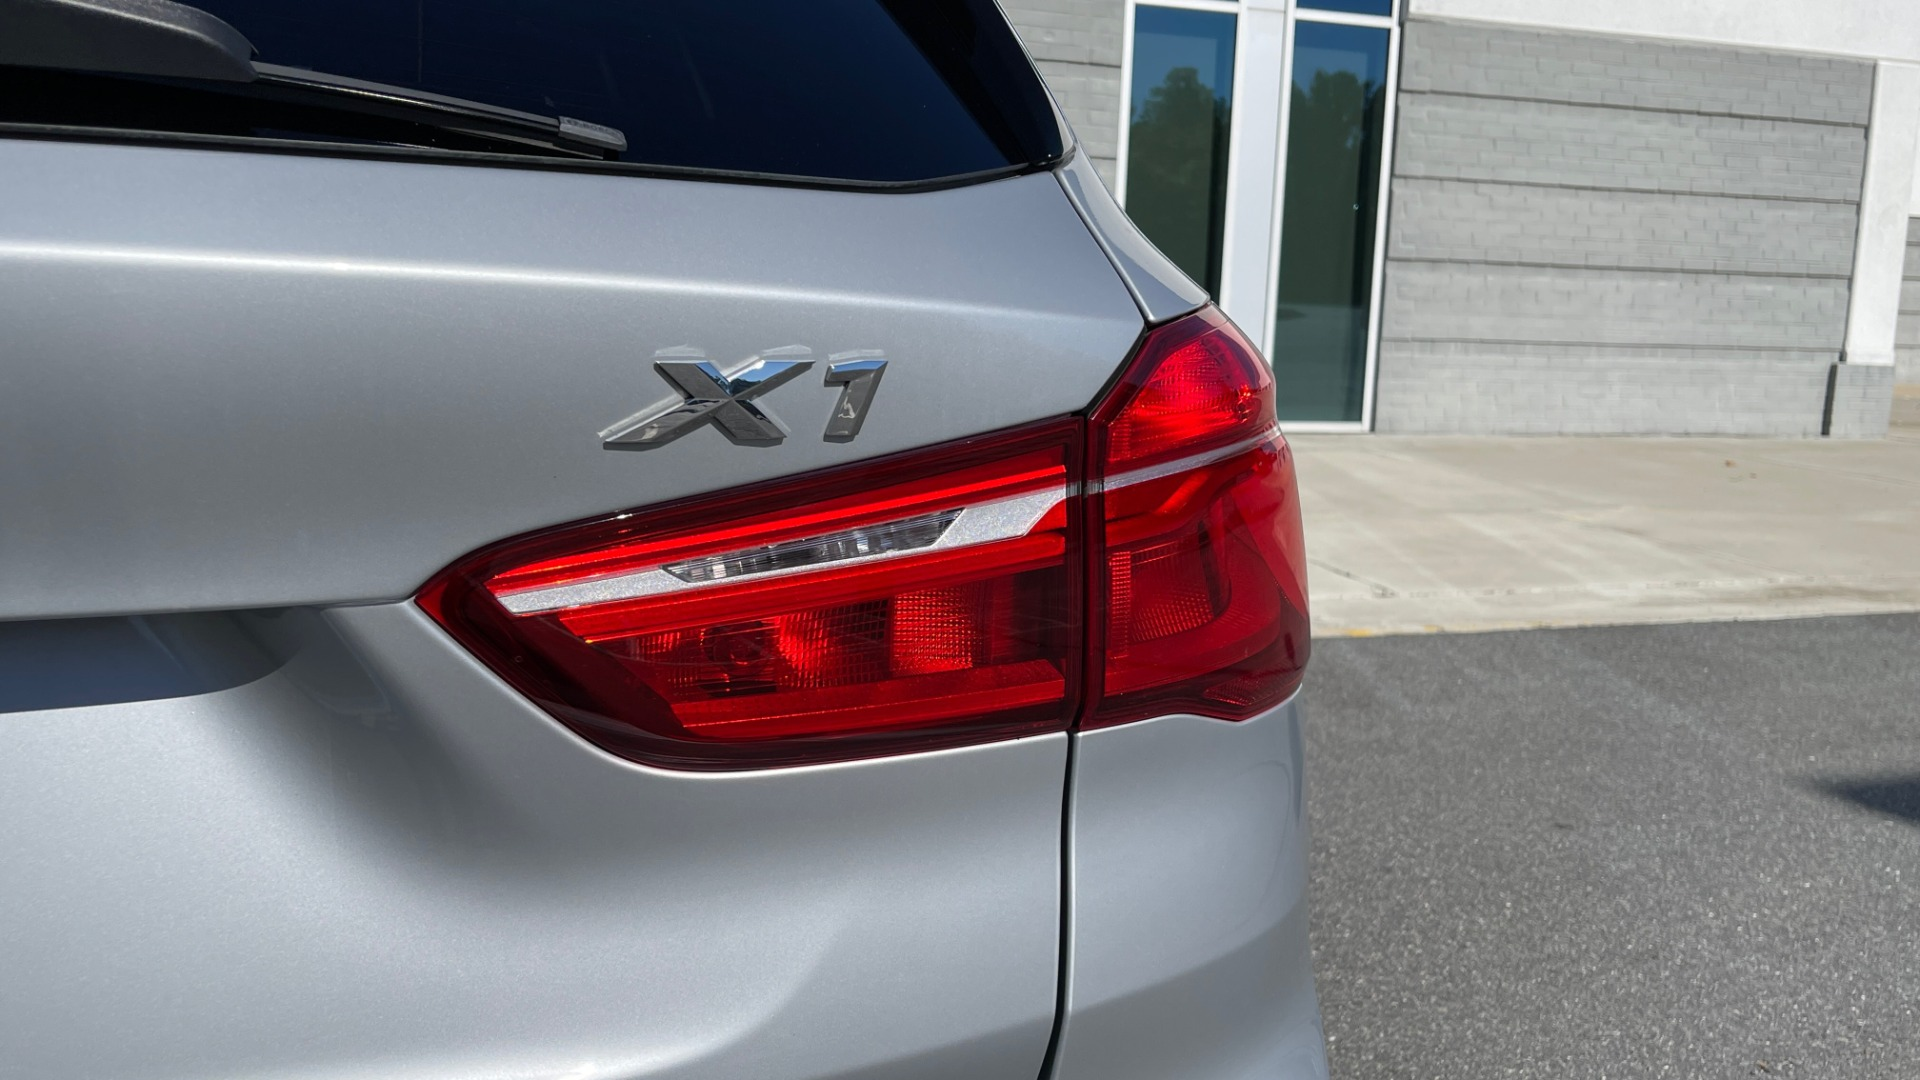 Used 2017 BMW X1 SDRIVE28I 2.0L / 8-SPD AUTO / DRIVER ASST / PANO-ROOF / REARVIEW for sale $26,995 at Formula Imports in Charlotte NC 28227 21